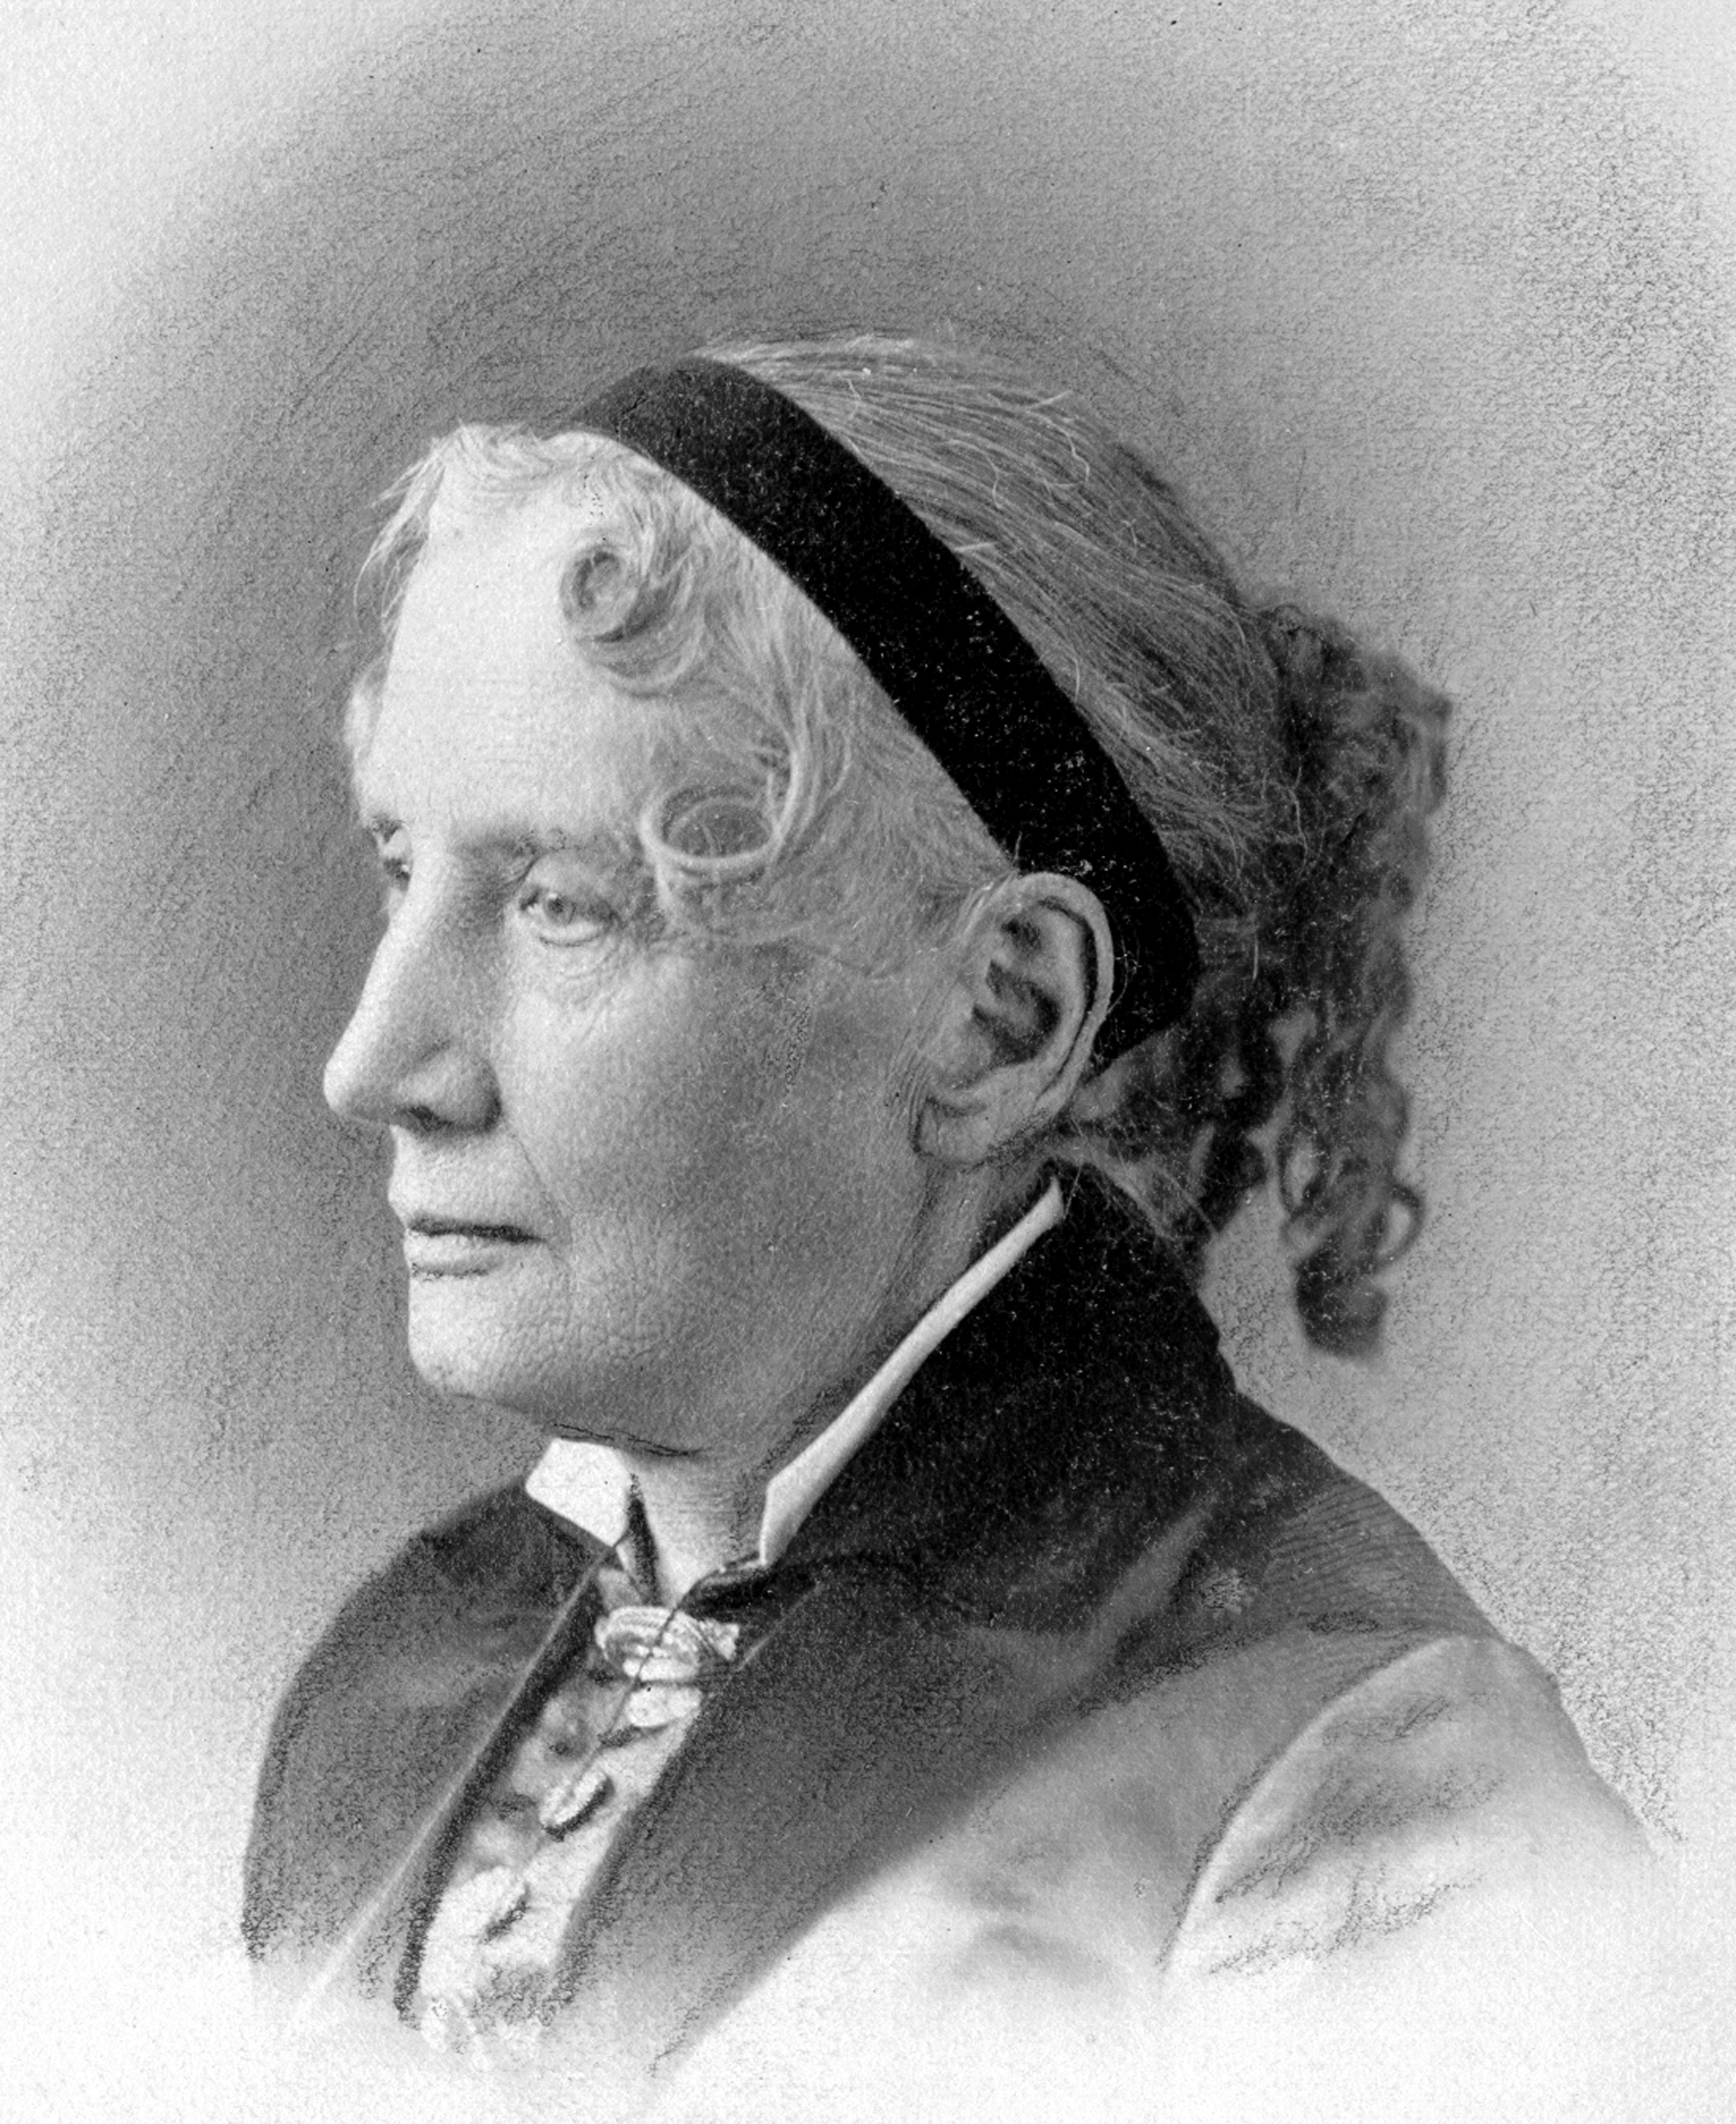 Image of Harriet Beecher Stowe.